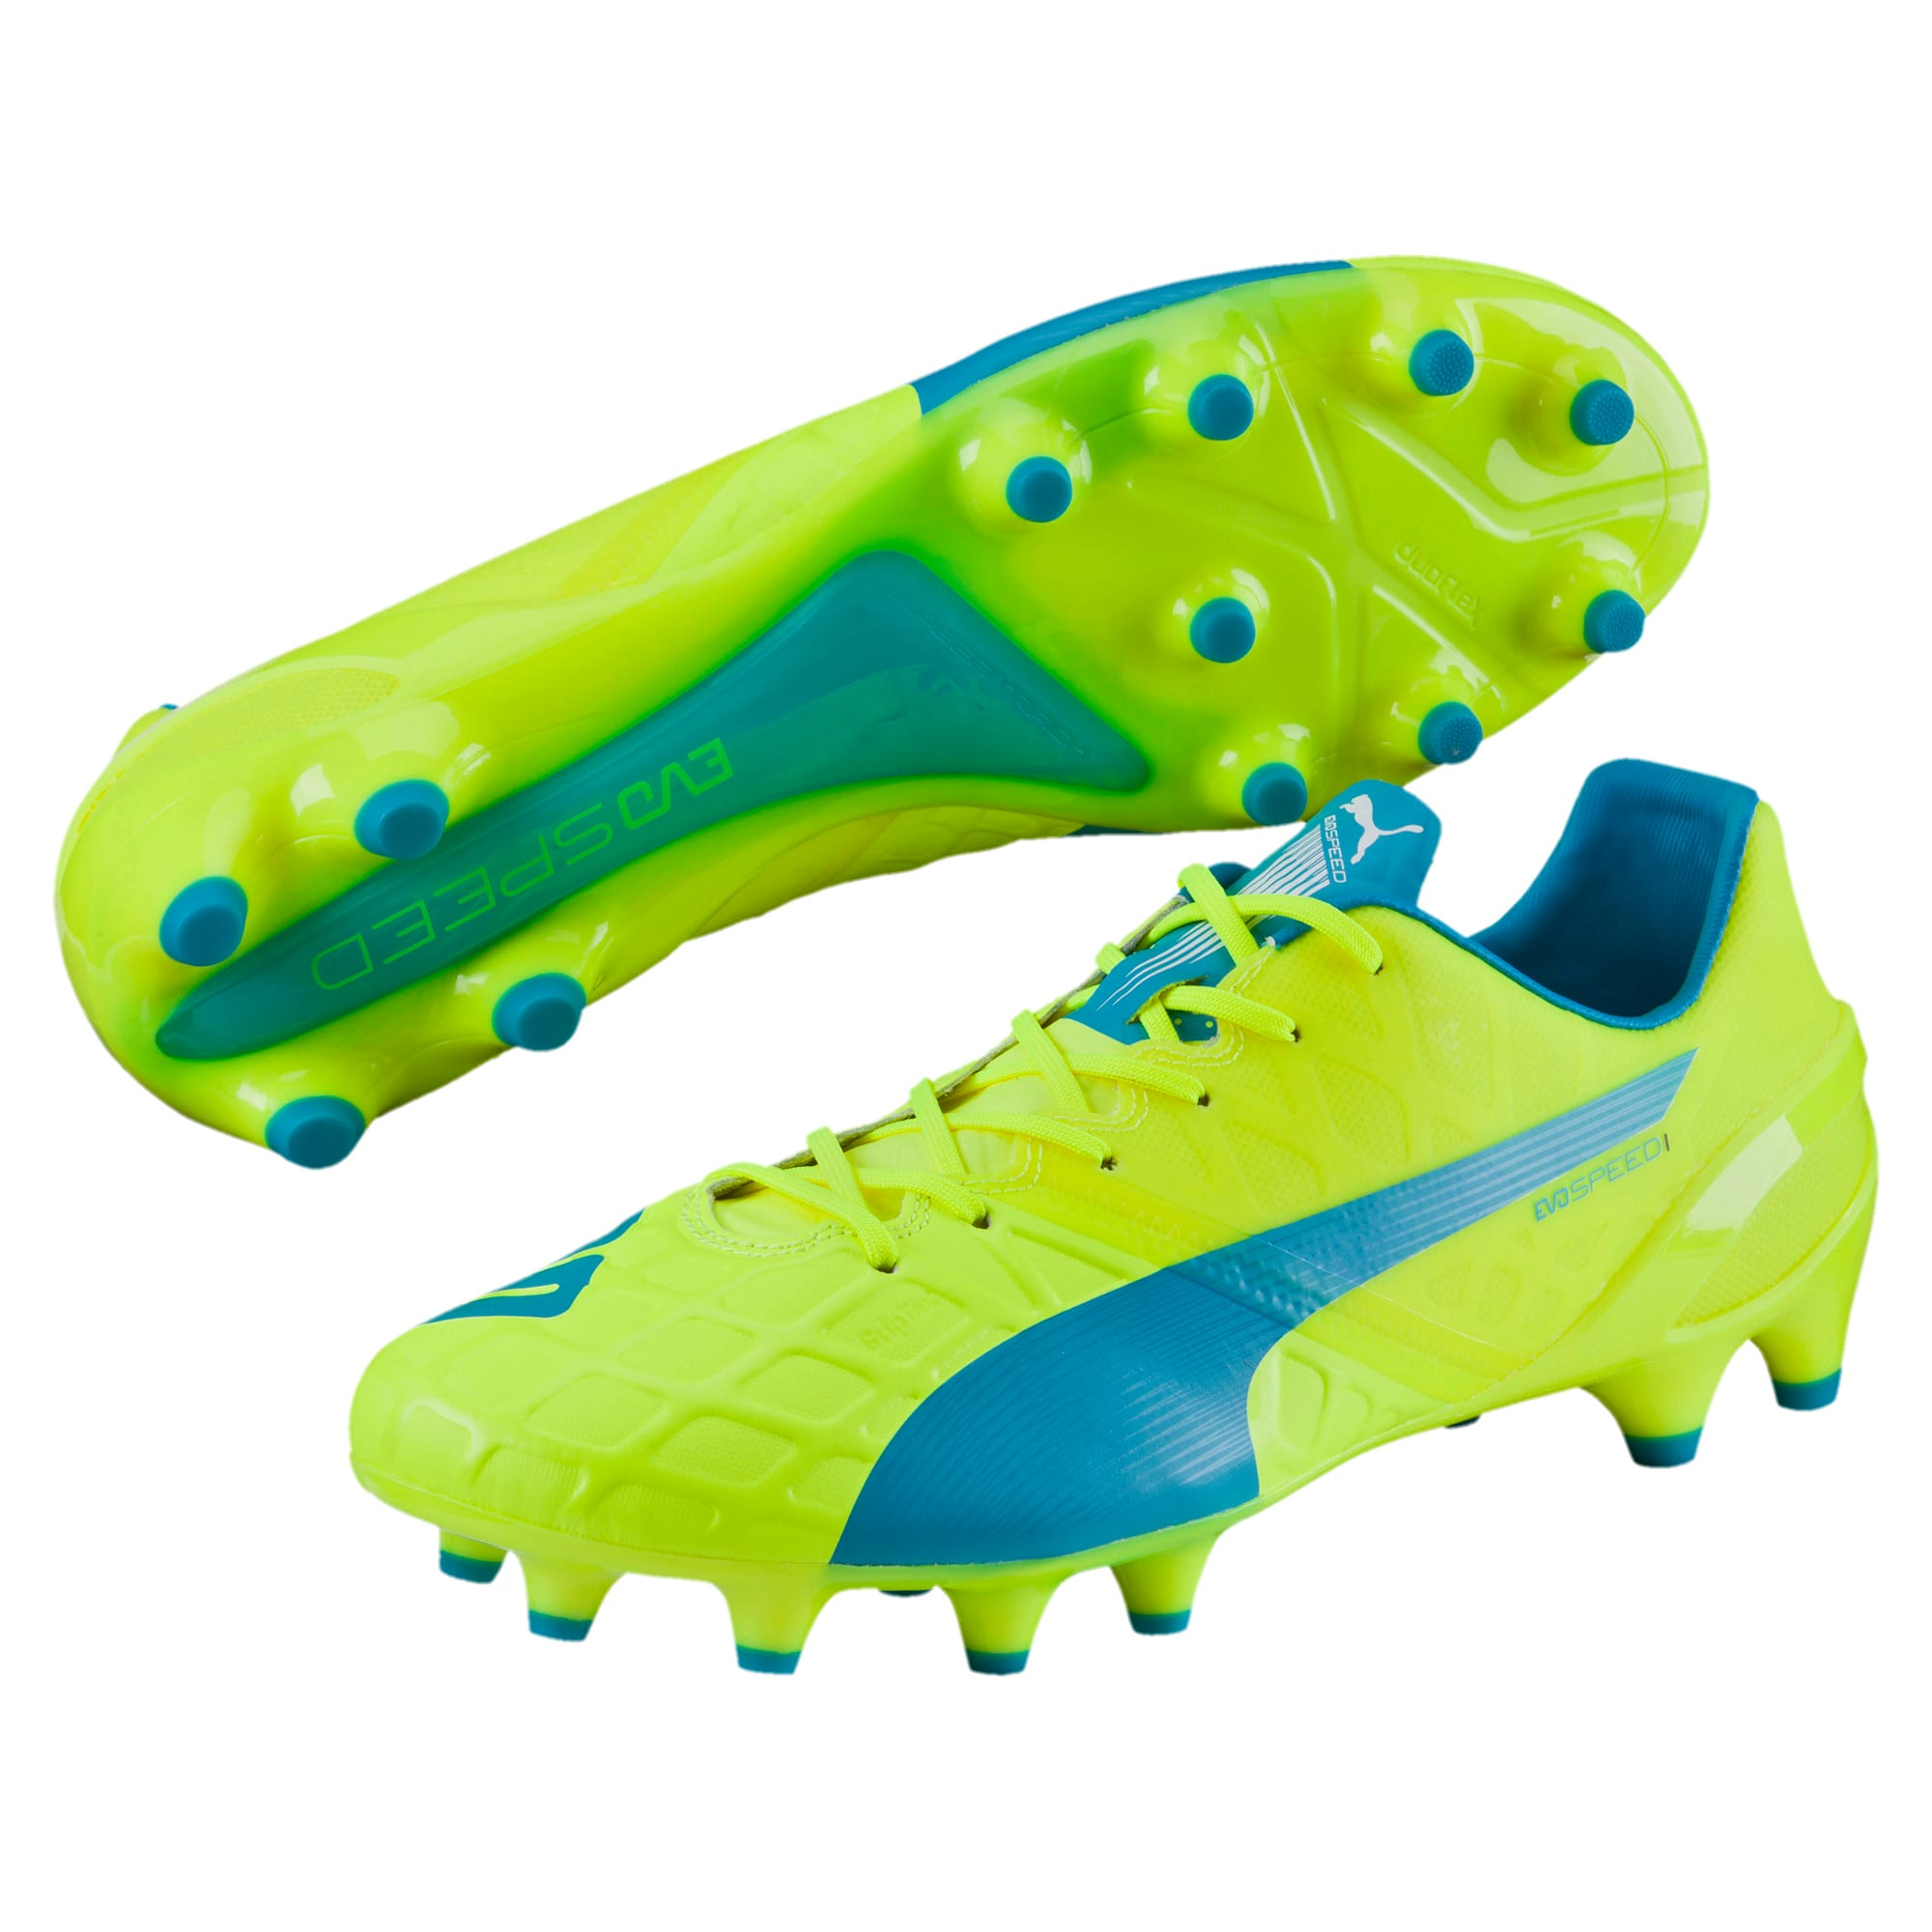 Thumbnail 2 of evoSPEED 1.4 FG Football Boots, yellow-blue-white, medium-IND